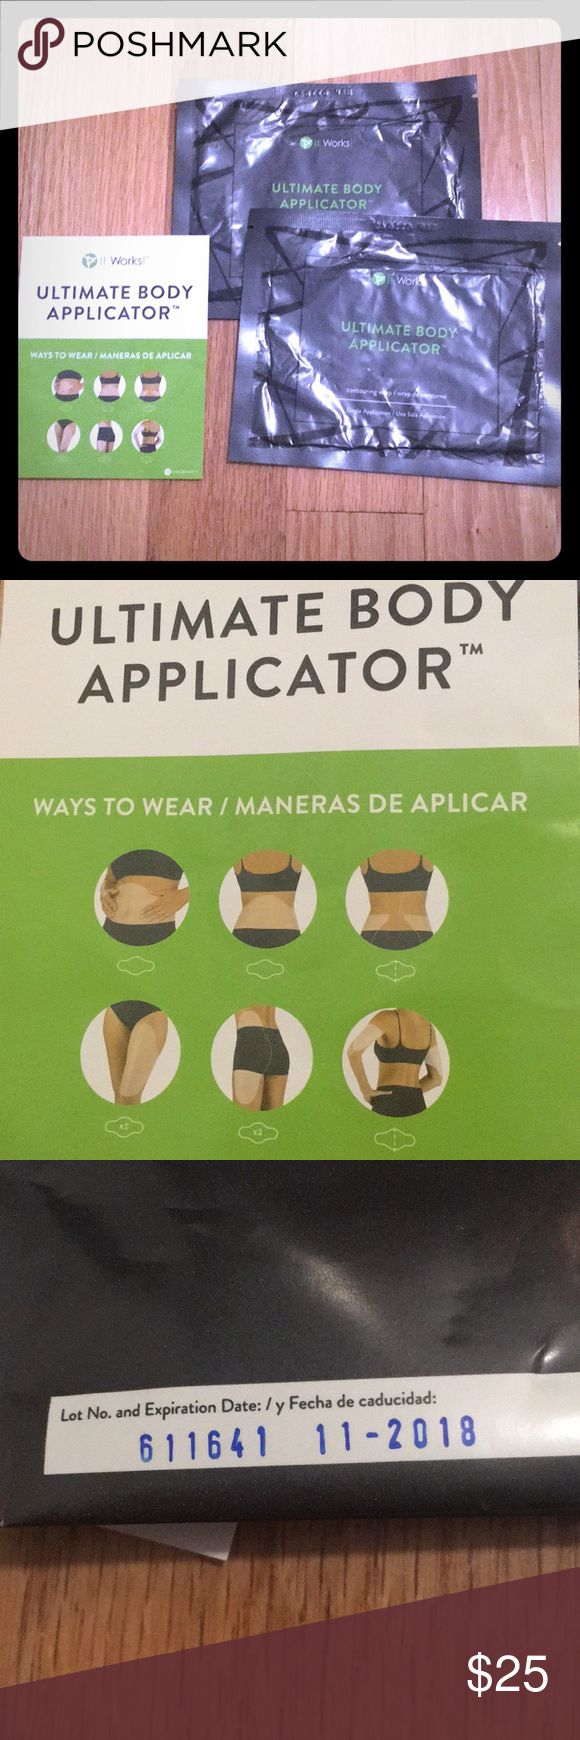 🌿It Works Skinny Wrap Ultimate Body Applicator🌿 It Works Ultimate Body Applicator Skinny Wrap 2 Pack. 1 for $25 or 2 for $50. ✅Offers Welcome! 📦✨📭 Same or Next Day Shipping Mon-Fri! Makeup